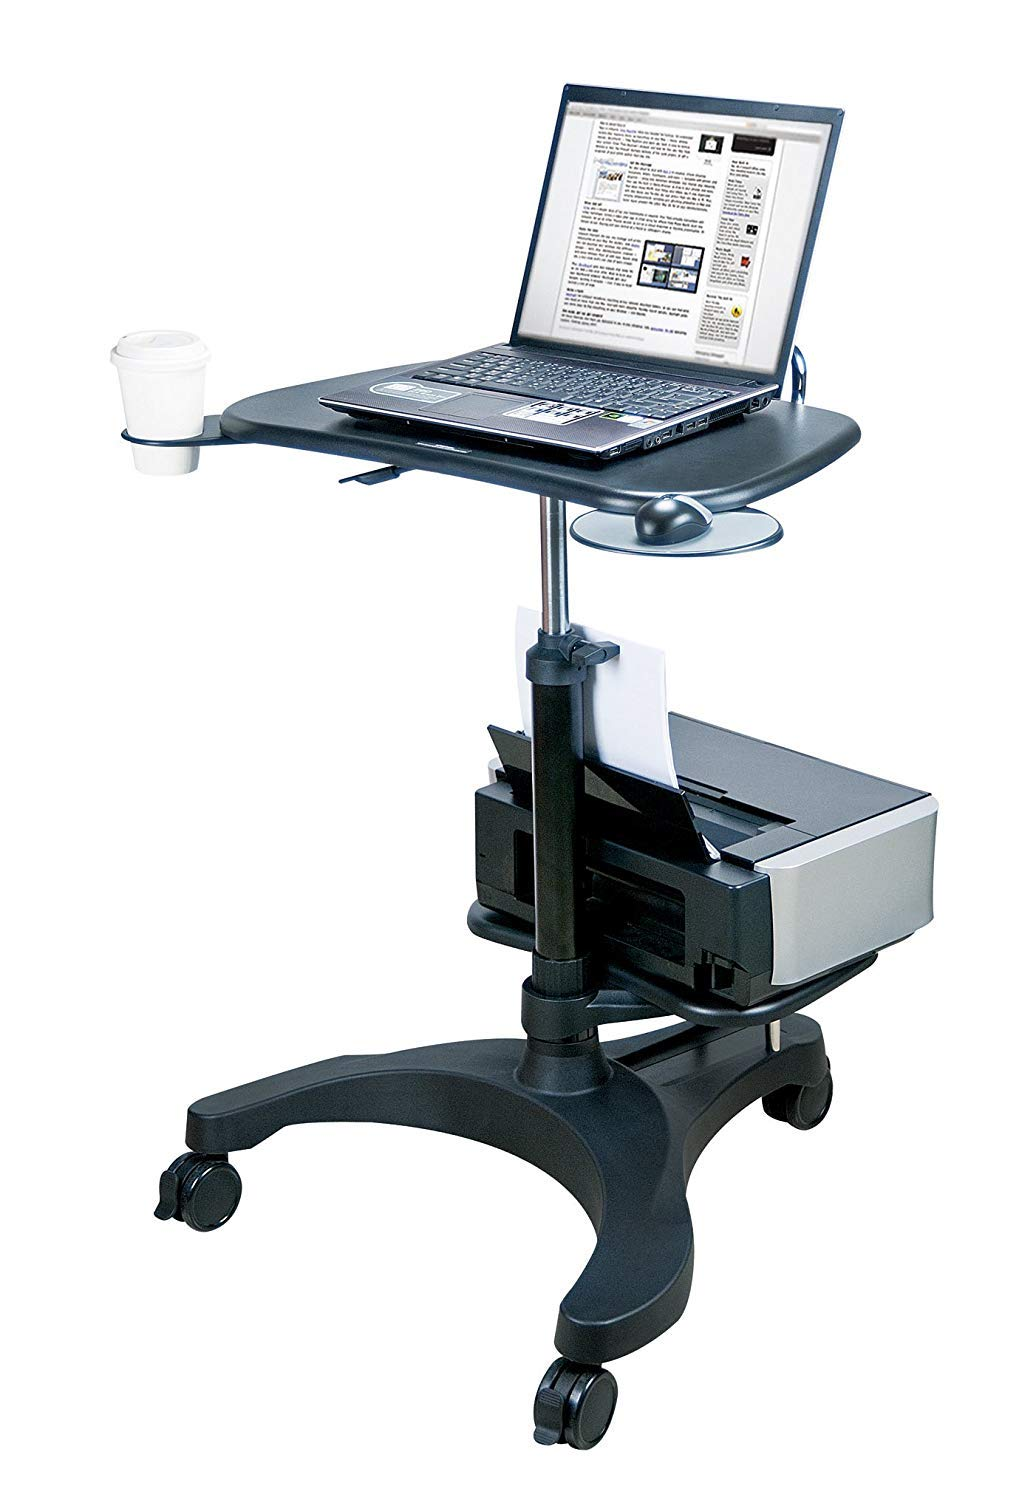 Aidata Ergonomic Sit-Stand Mobile Laptop Cart Work Station with Printer Shelf Model: LPD009P by HARRRRD